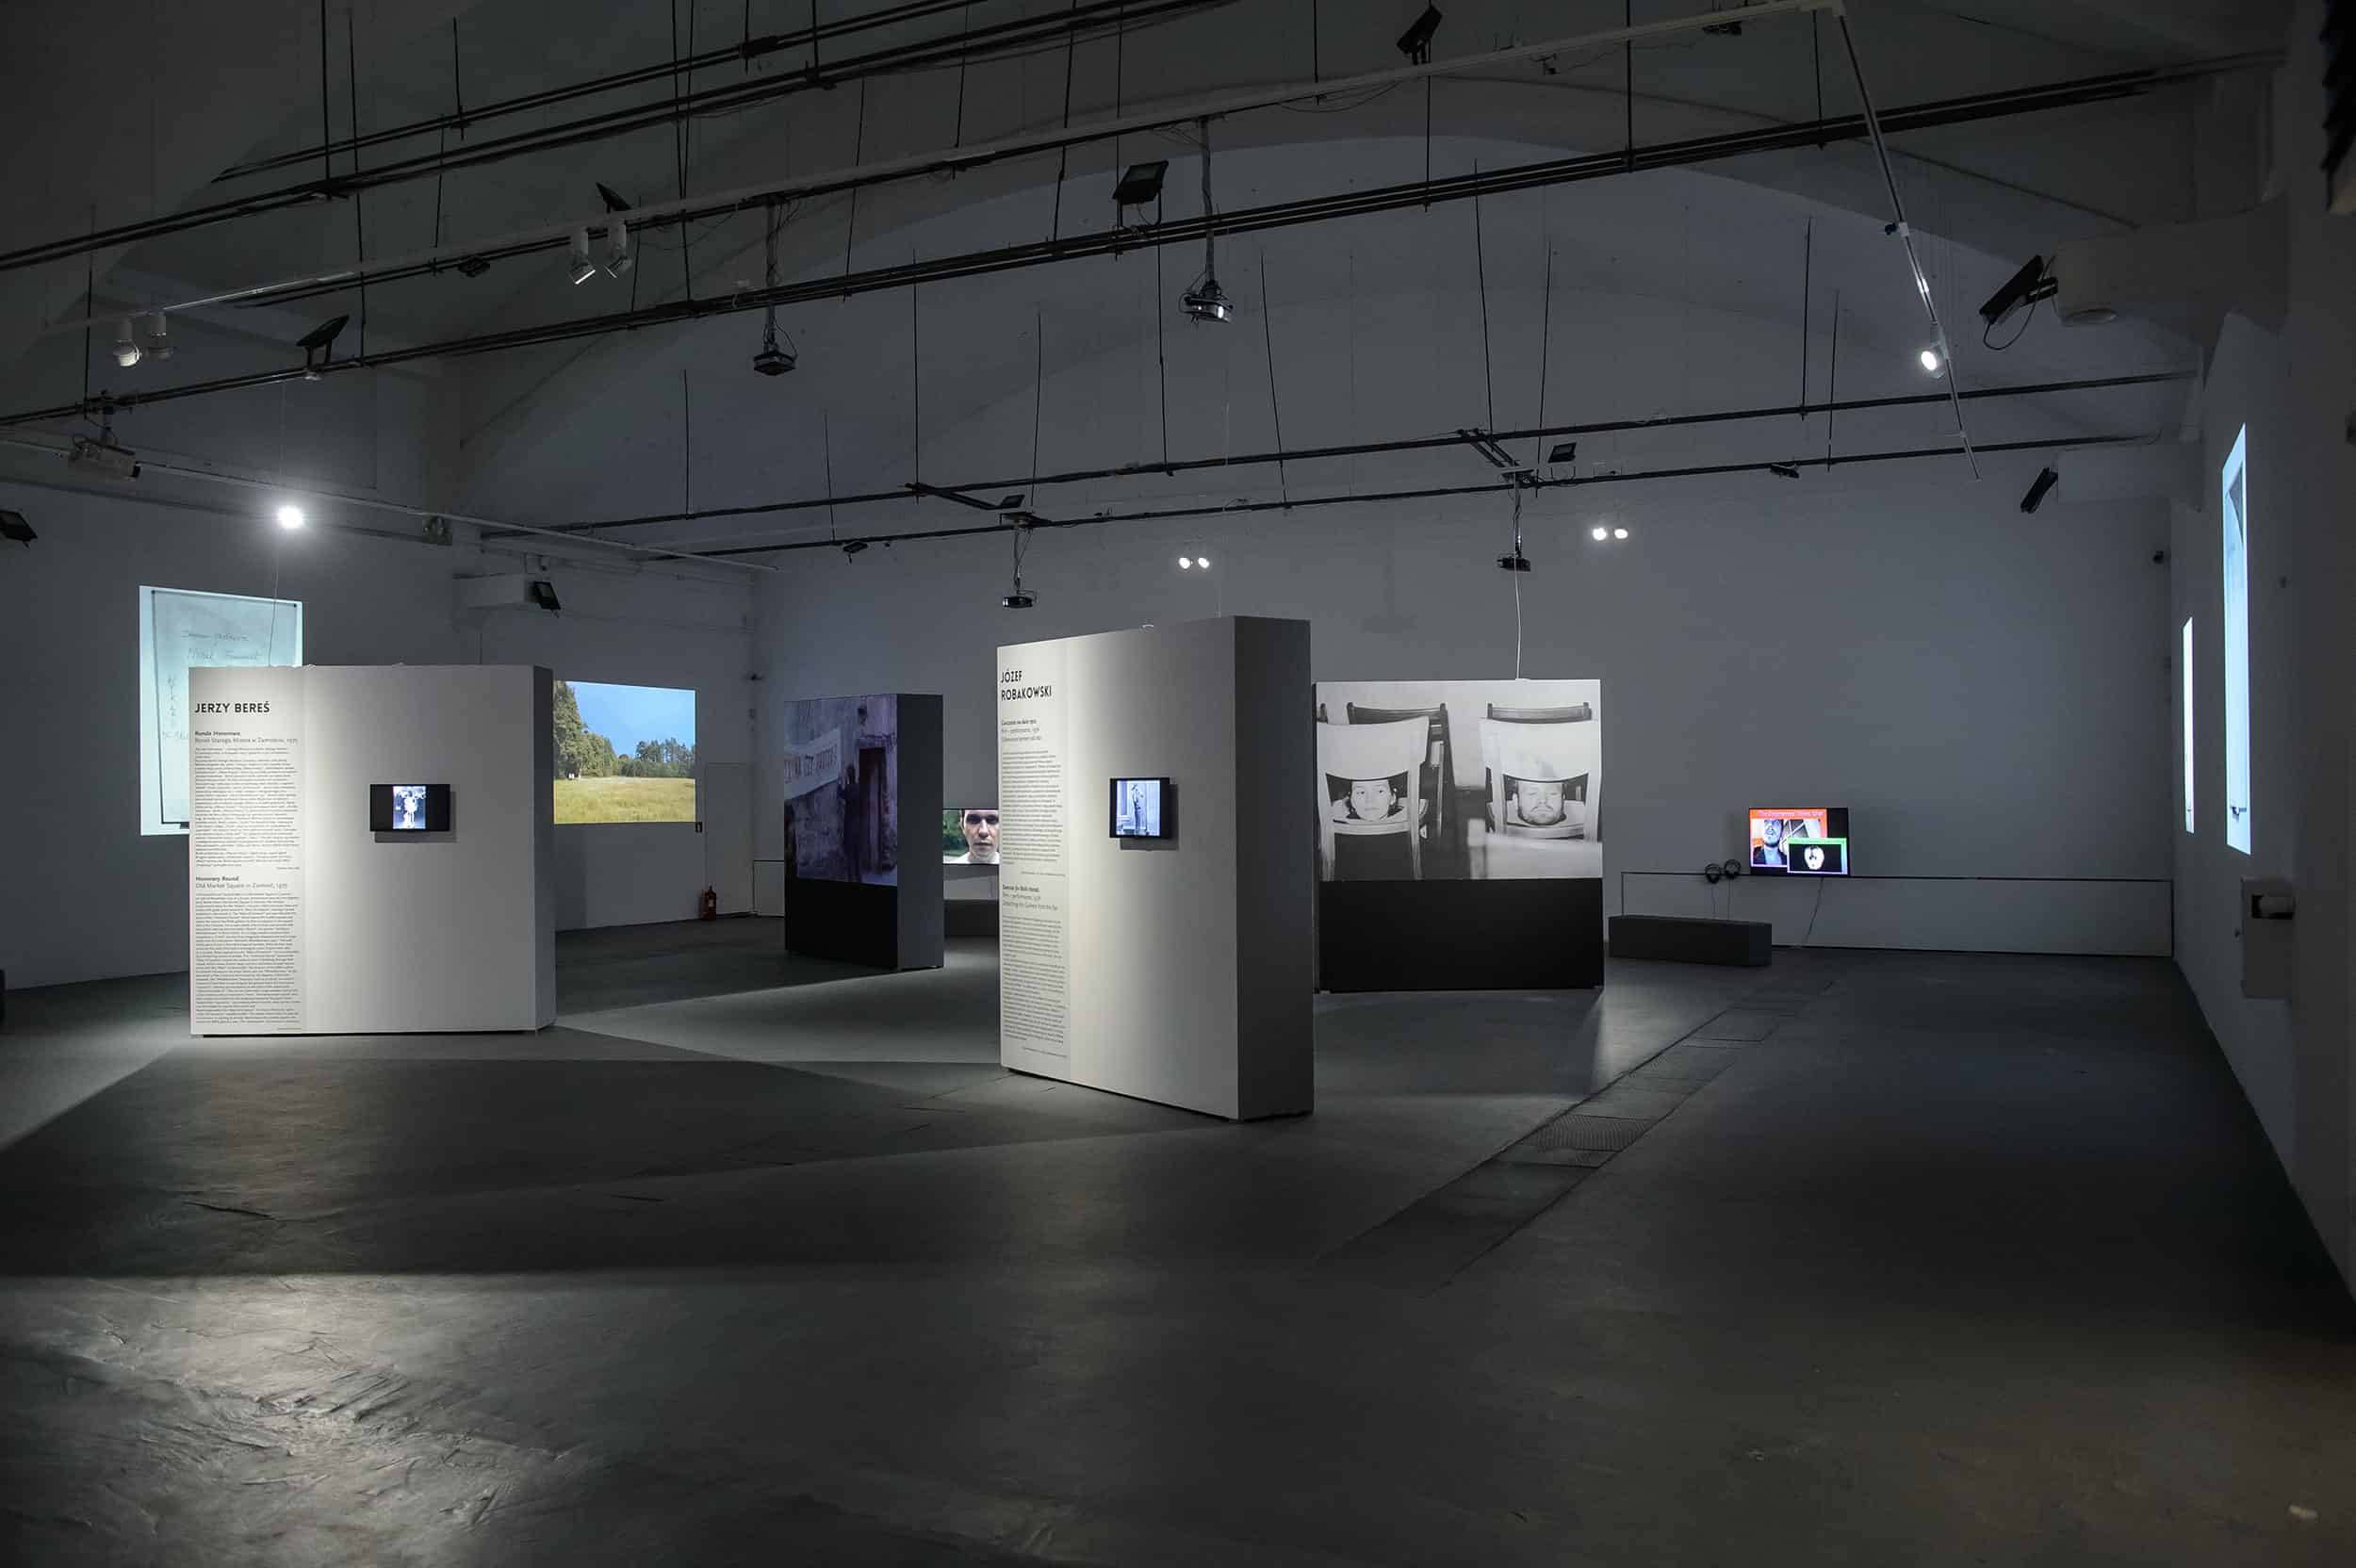 Akcja Lublin! Chapter-2, exhibition view